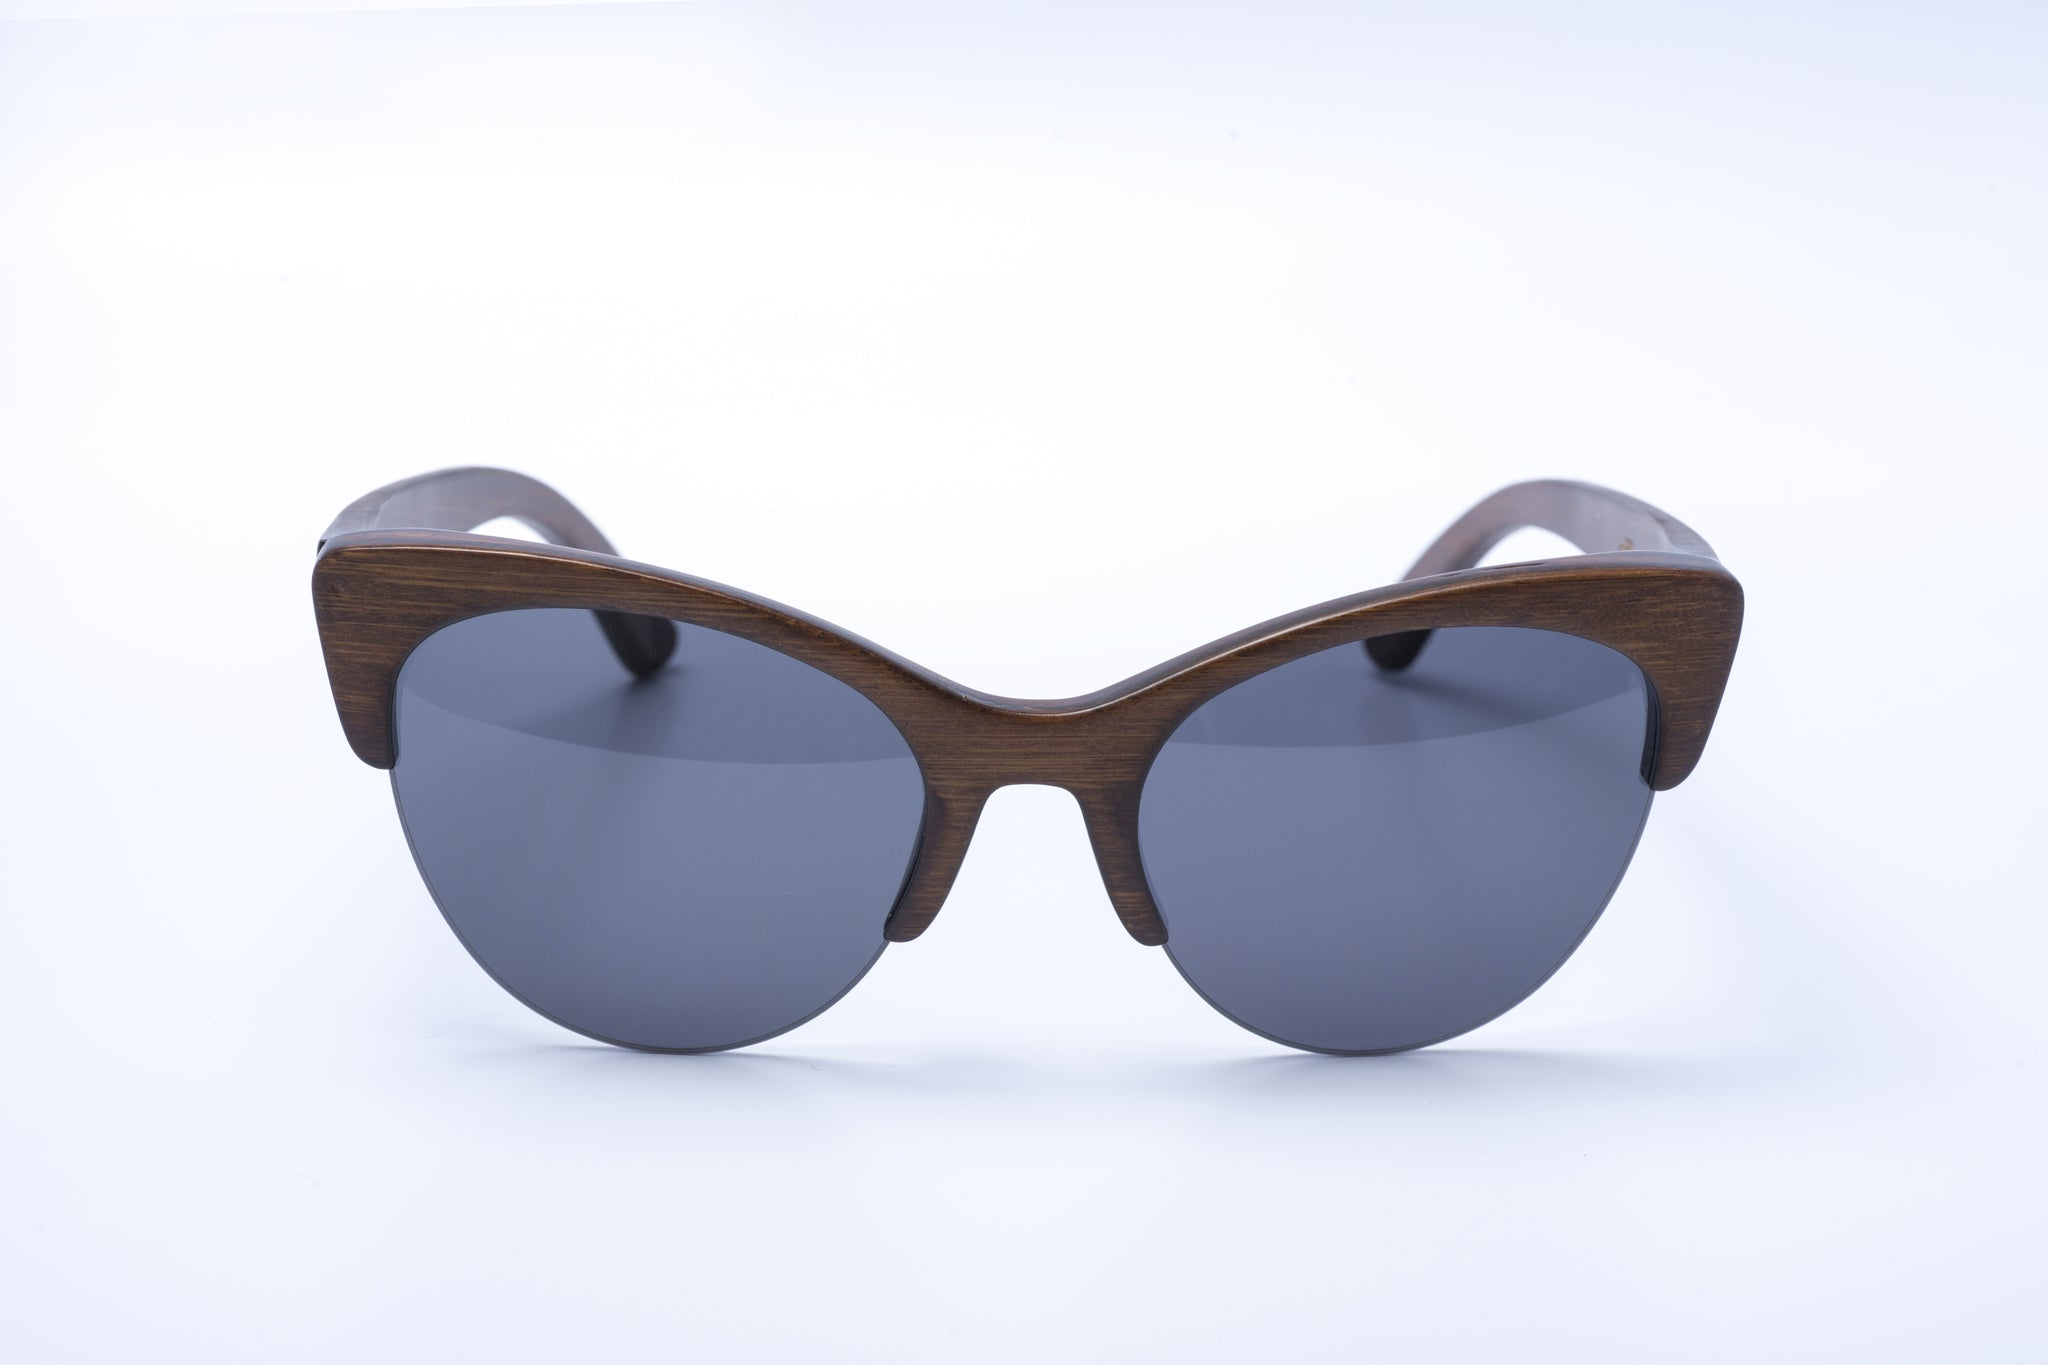 Rita Bamboo Sunglasses - Black - a perfect addition as gifts for scuba divers